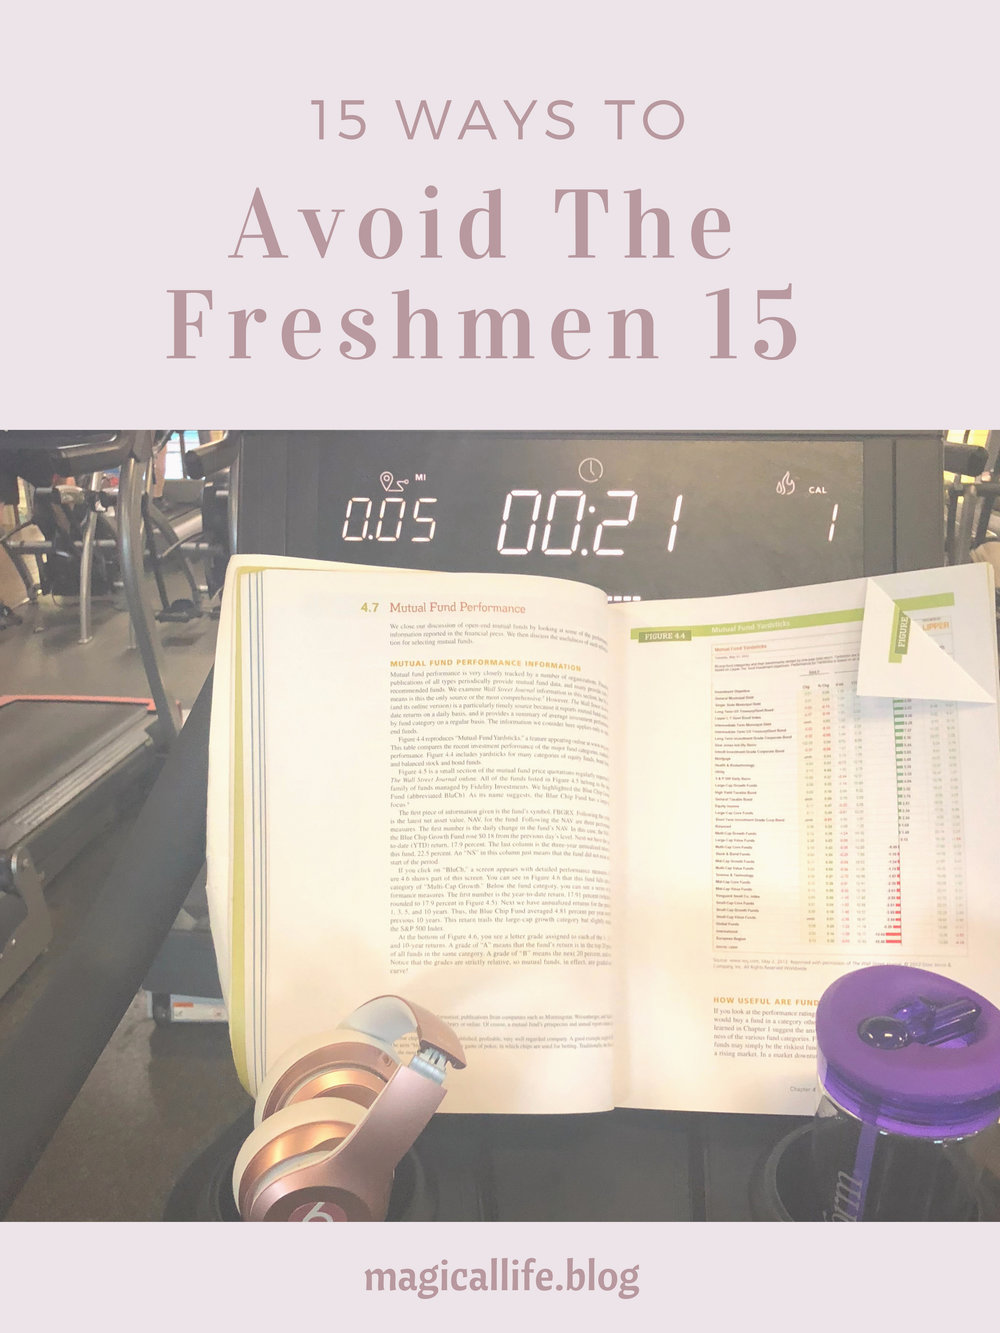 Avoid the Freshman 15